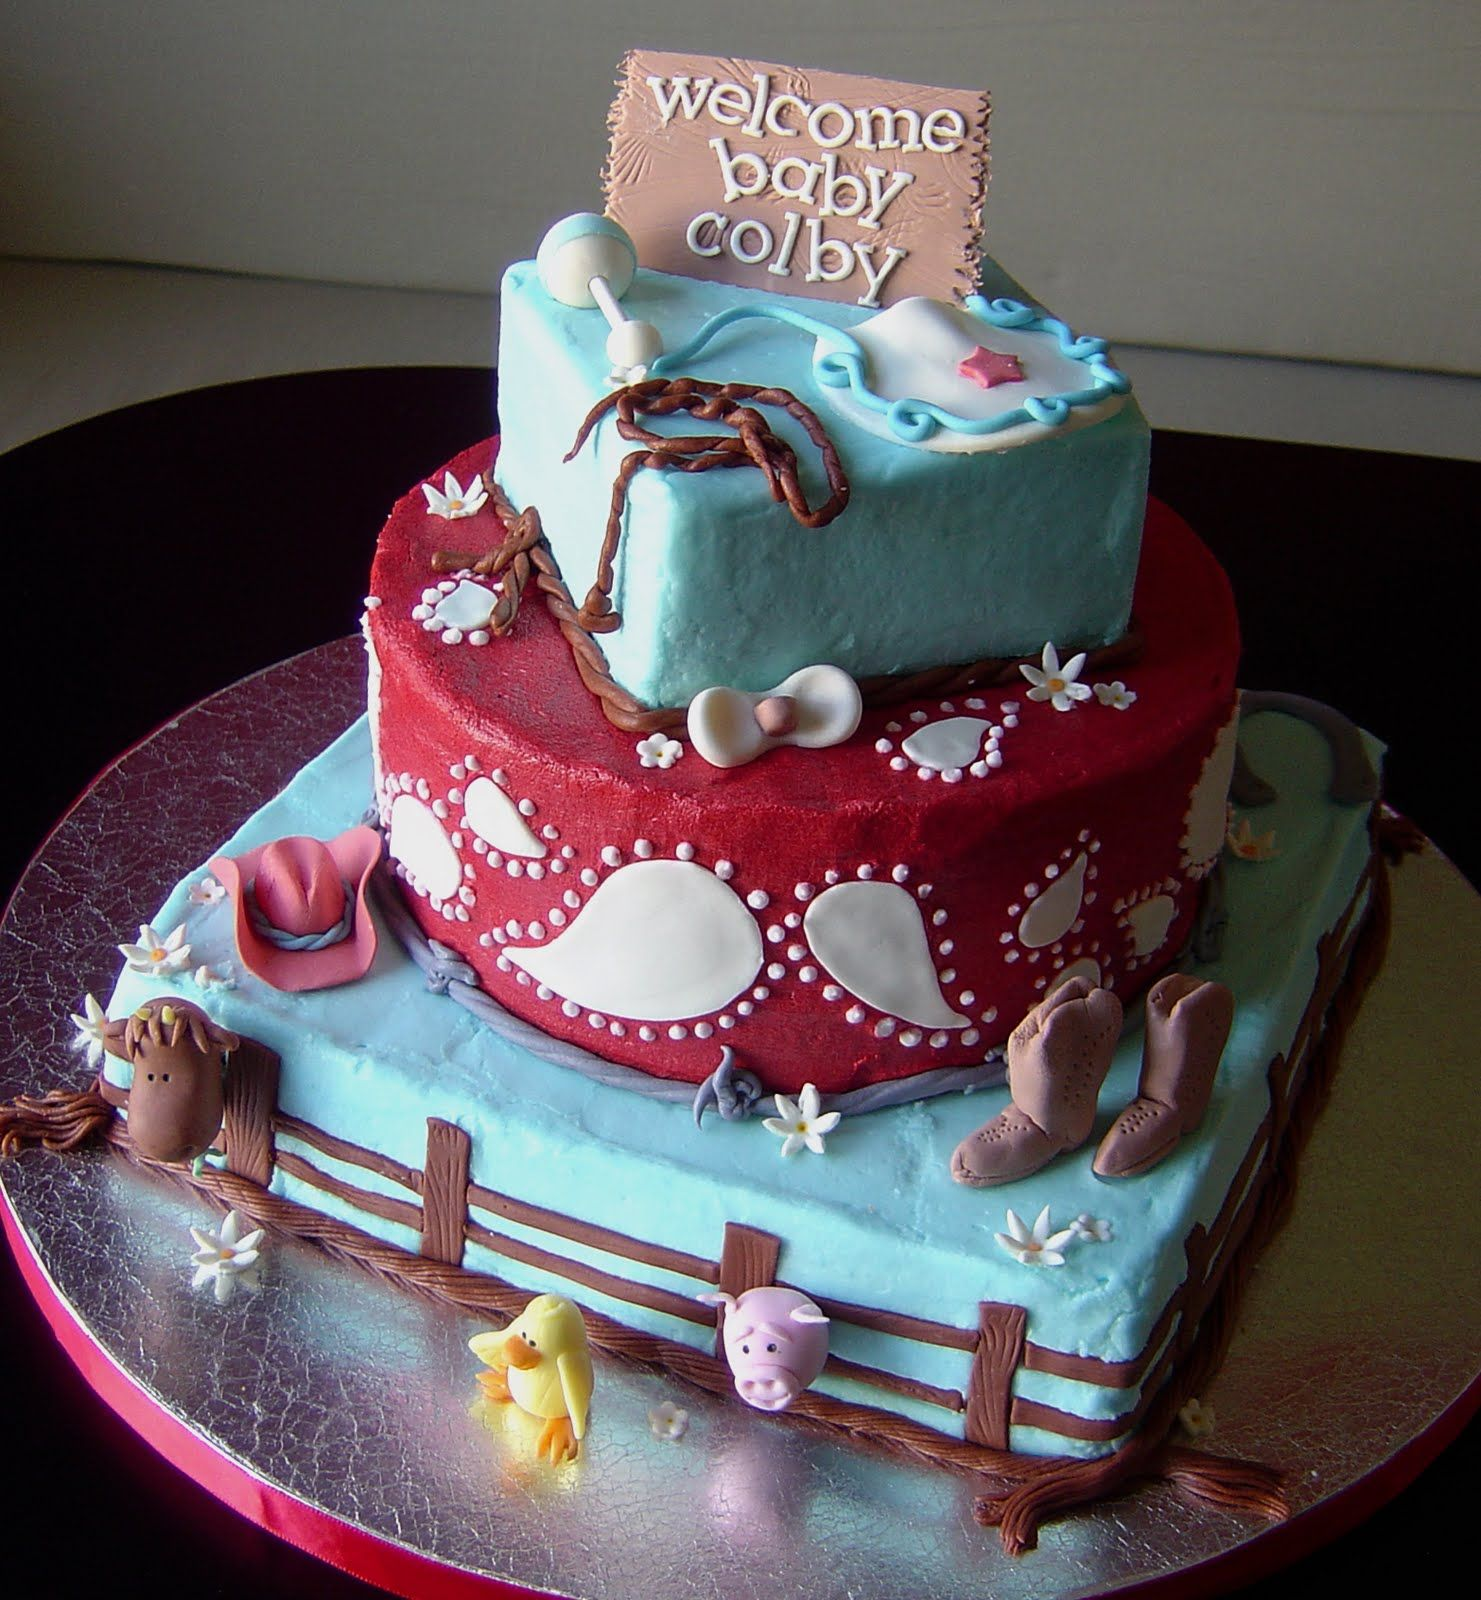 Charming Crazy For Design: Western Baby Shower Cake